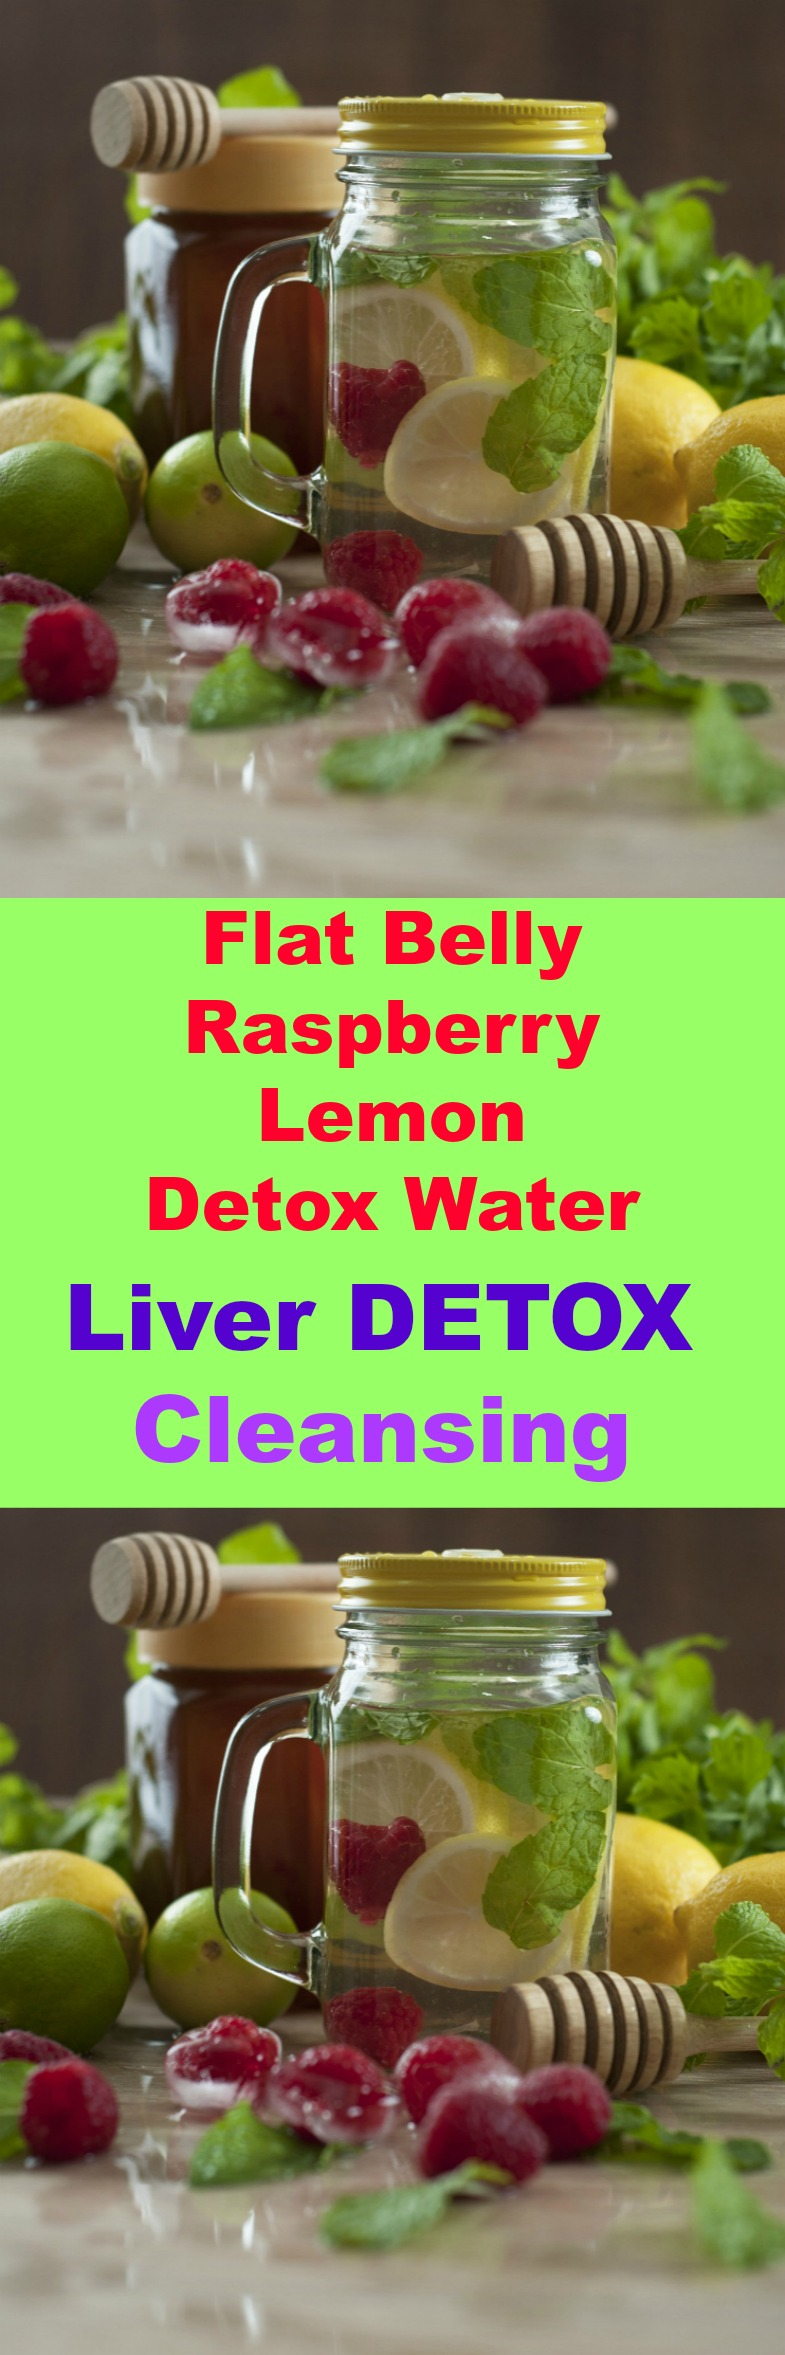 Flat Belly Raspberry Lemon Detox Water to help you with belly bloat! Drink this all day to help flush those toxins from your kidneys, liver, and colon.